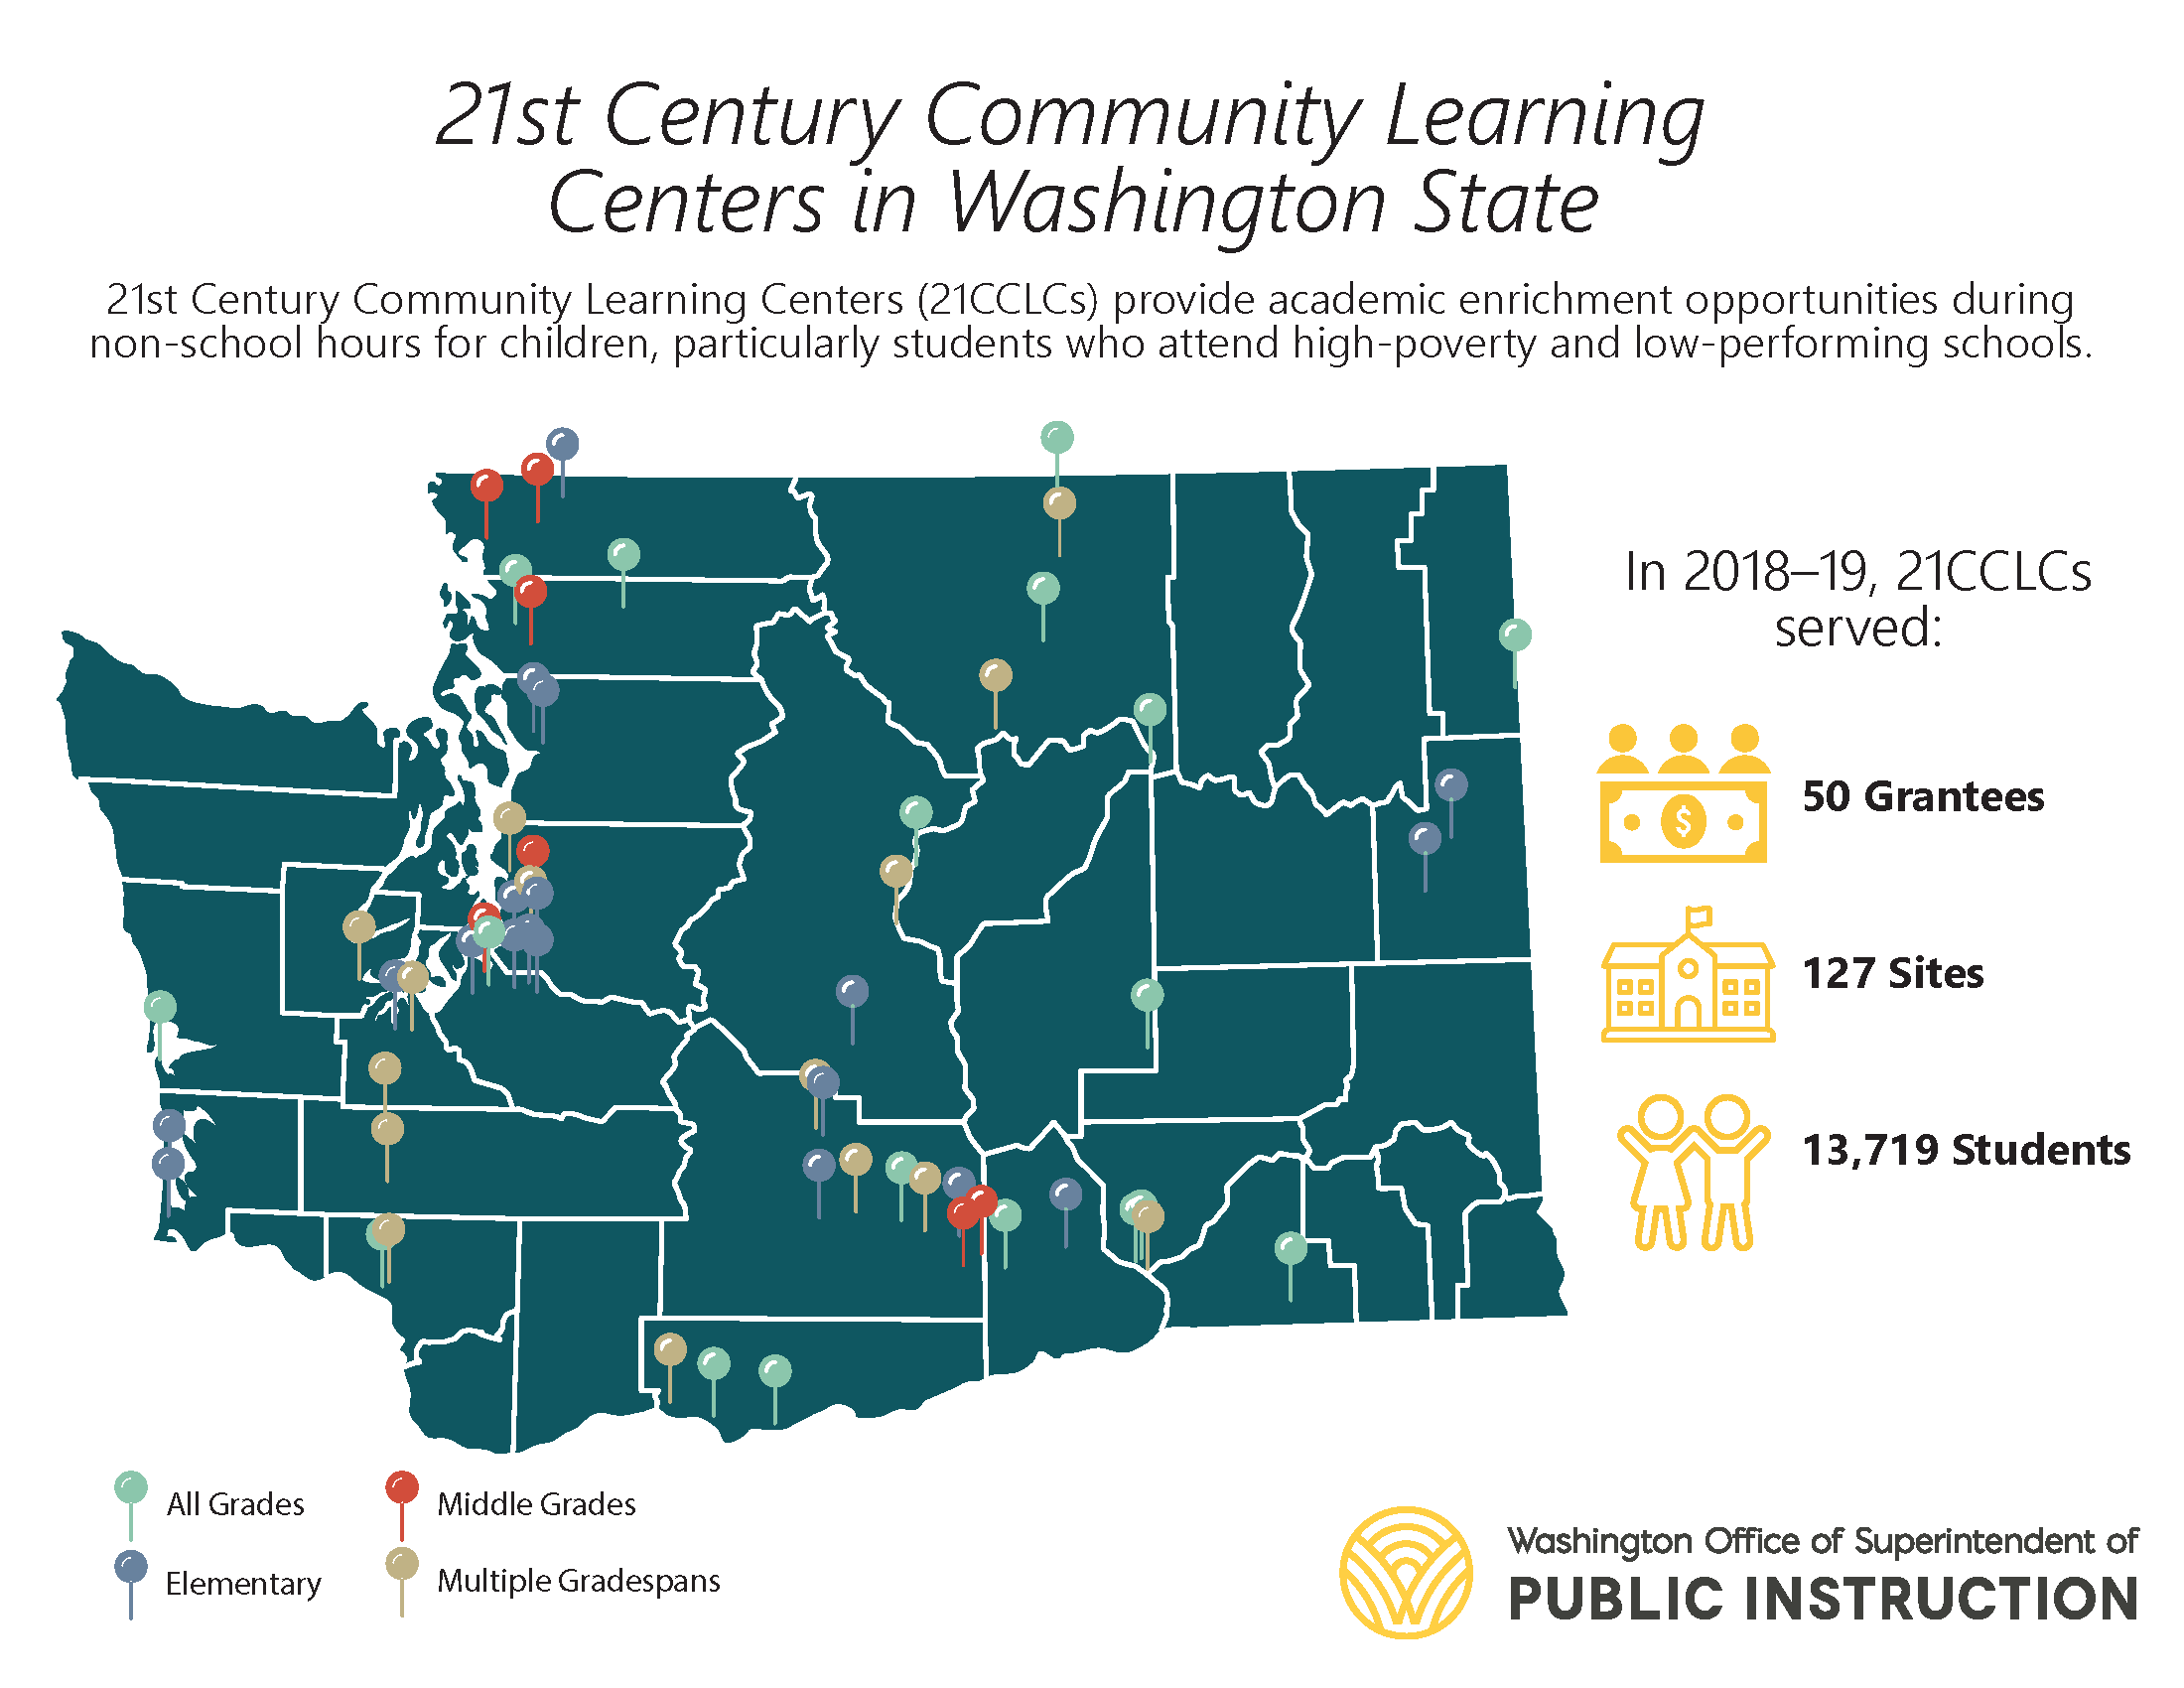 21st Century Community Learning Centers map in Washington State